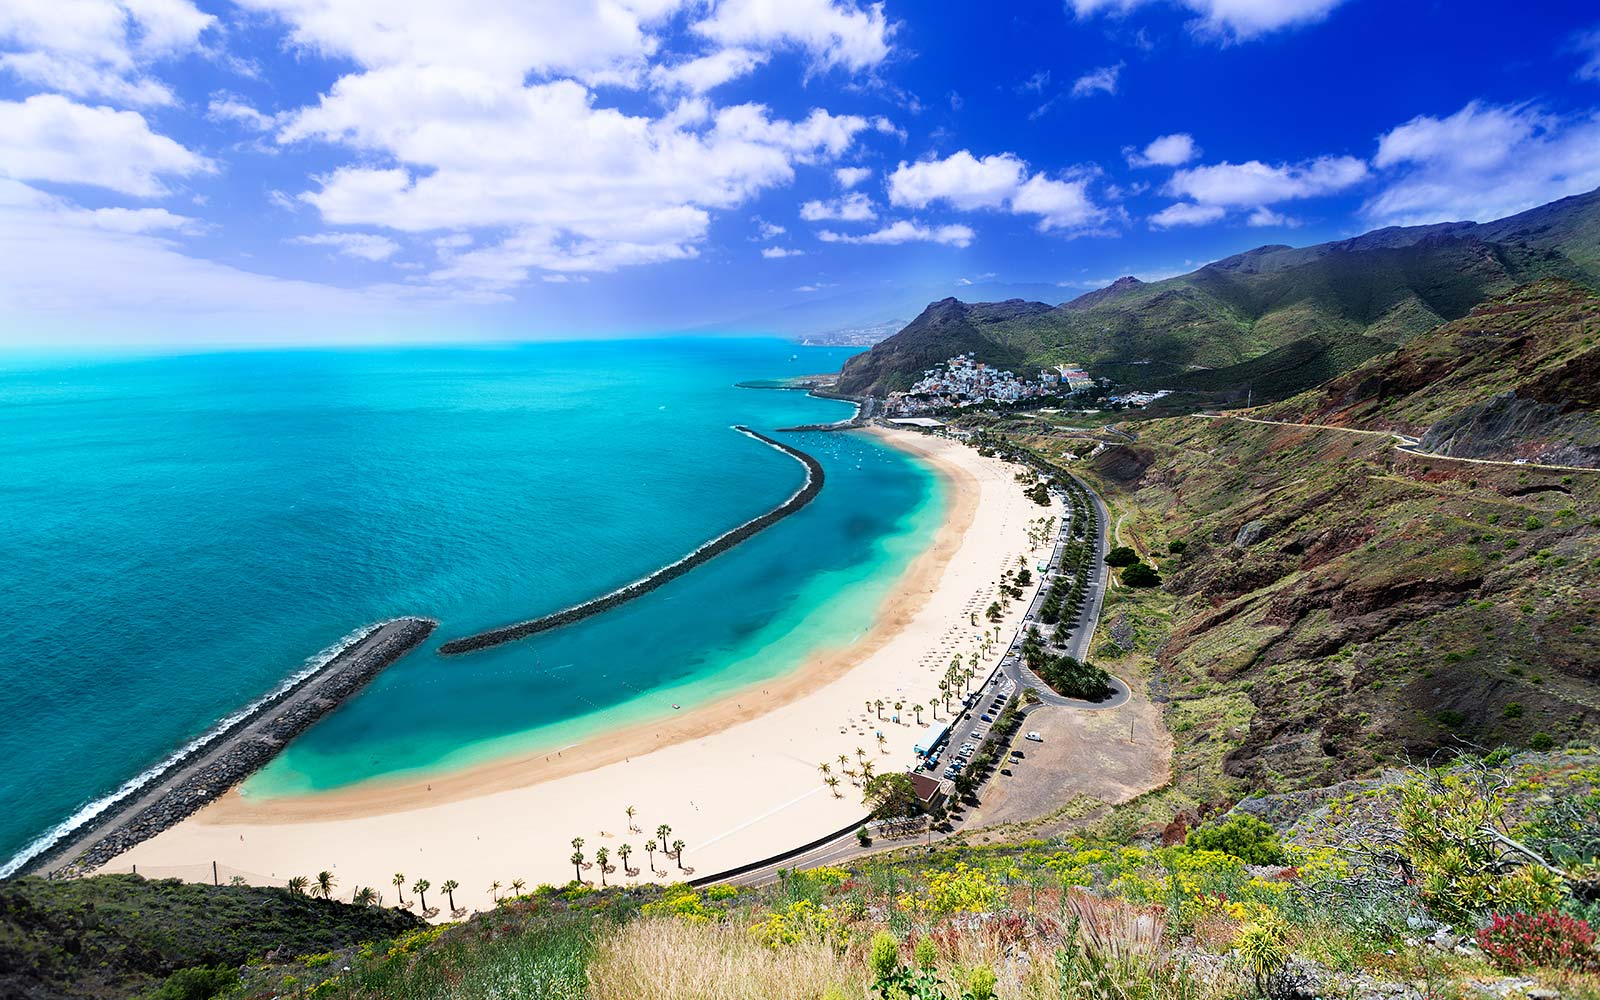 Playa de Las Teresitas, a famous beach near Santa Cruz de Tenerife in the north of Tenerife, Canary Islands, Spain